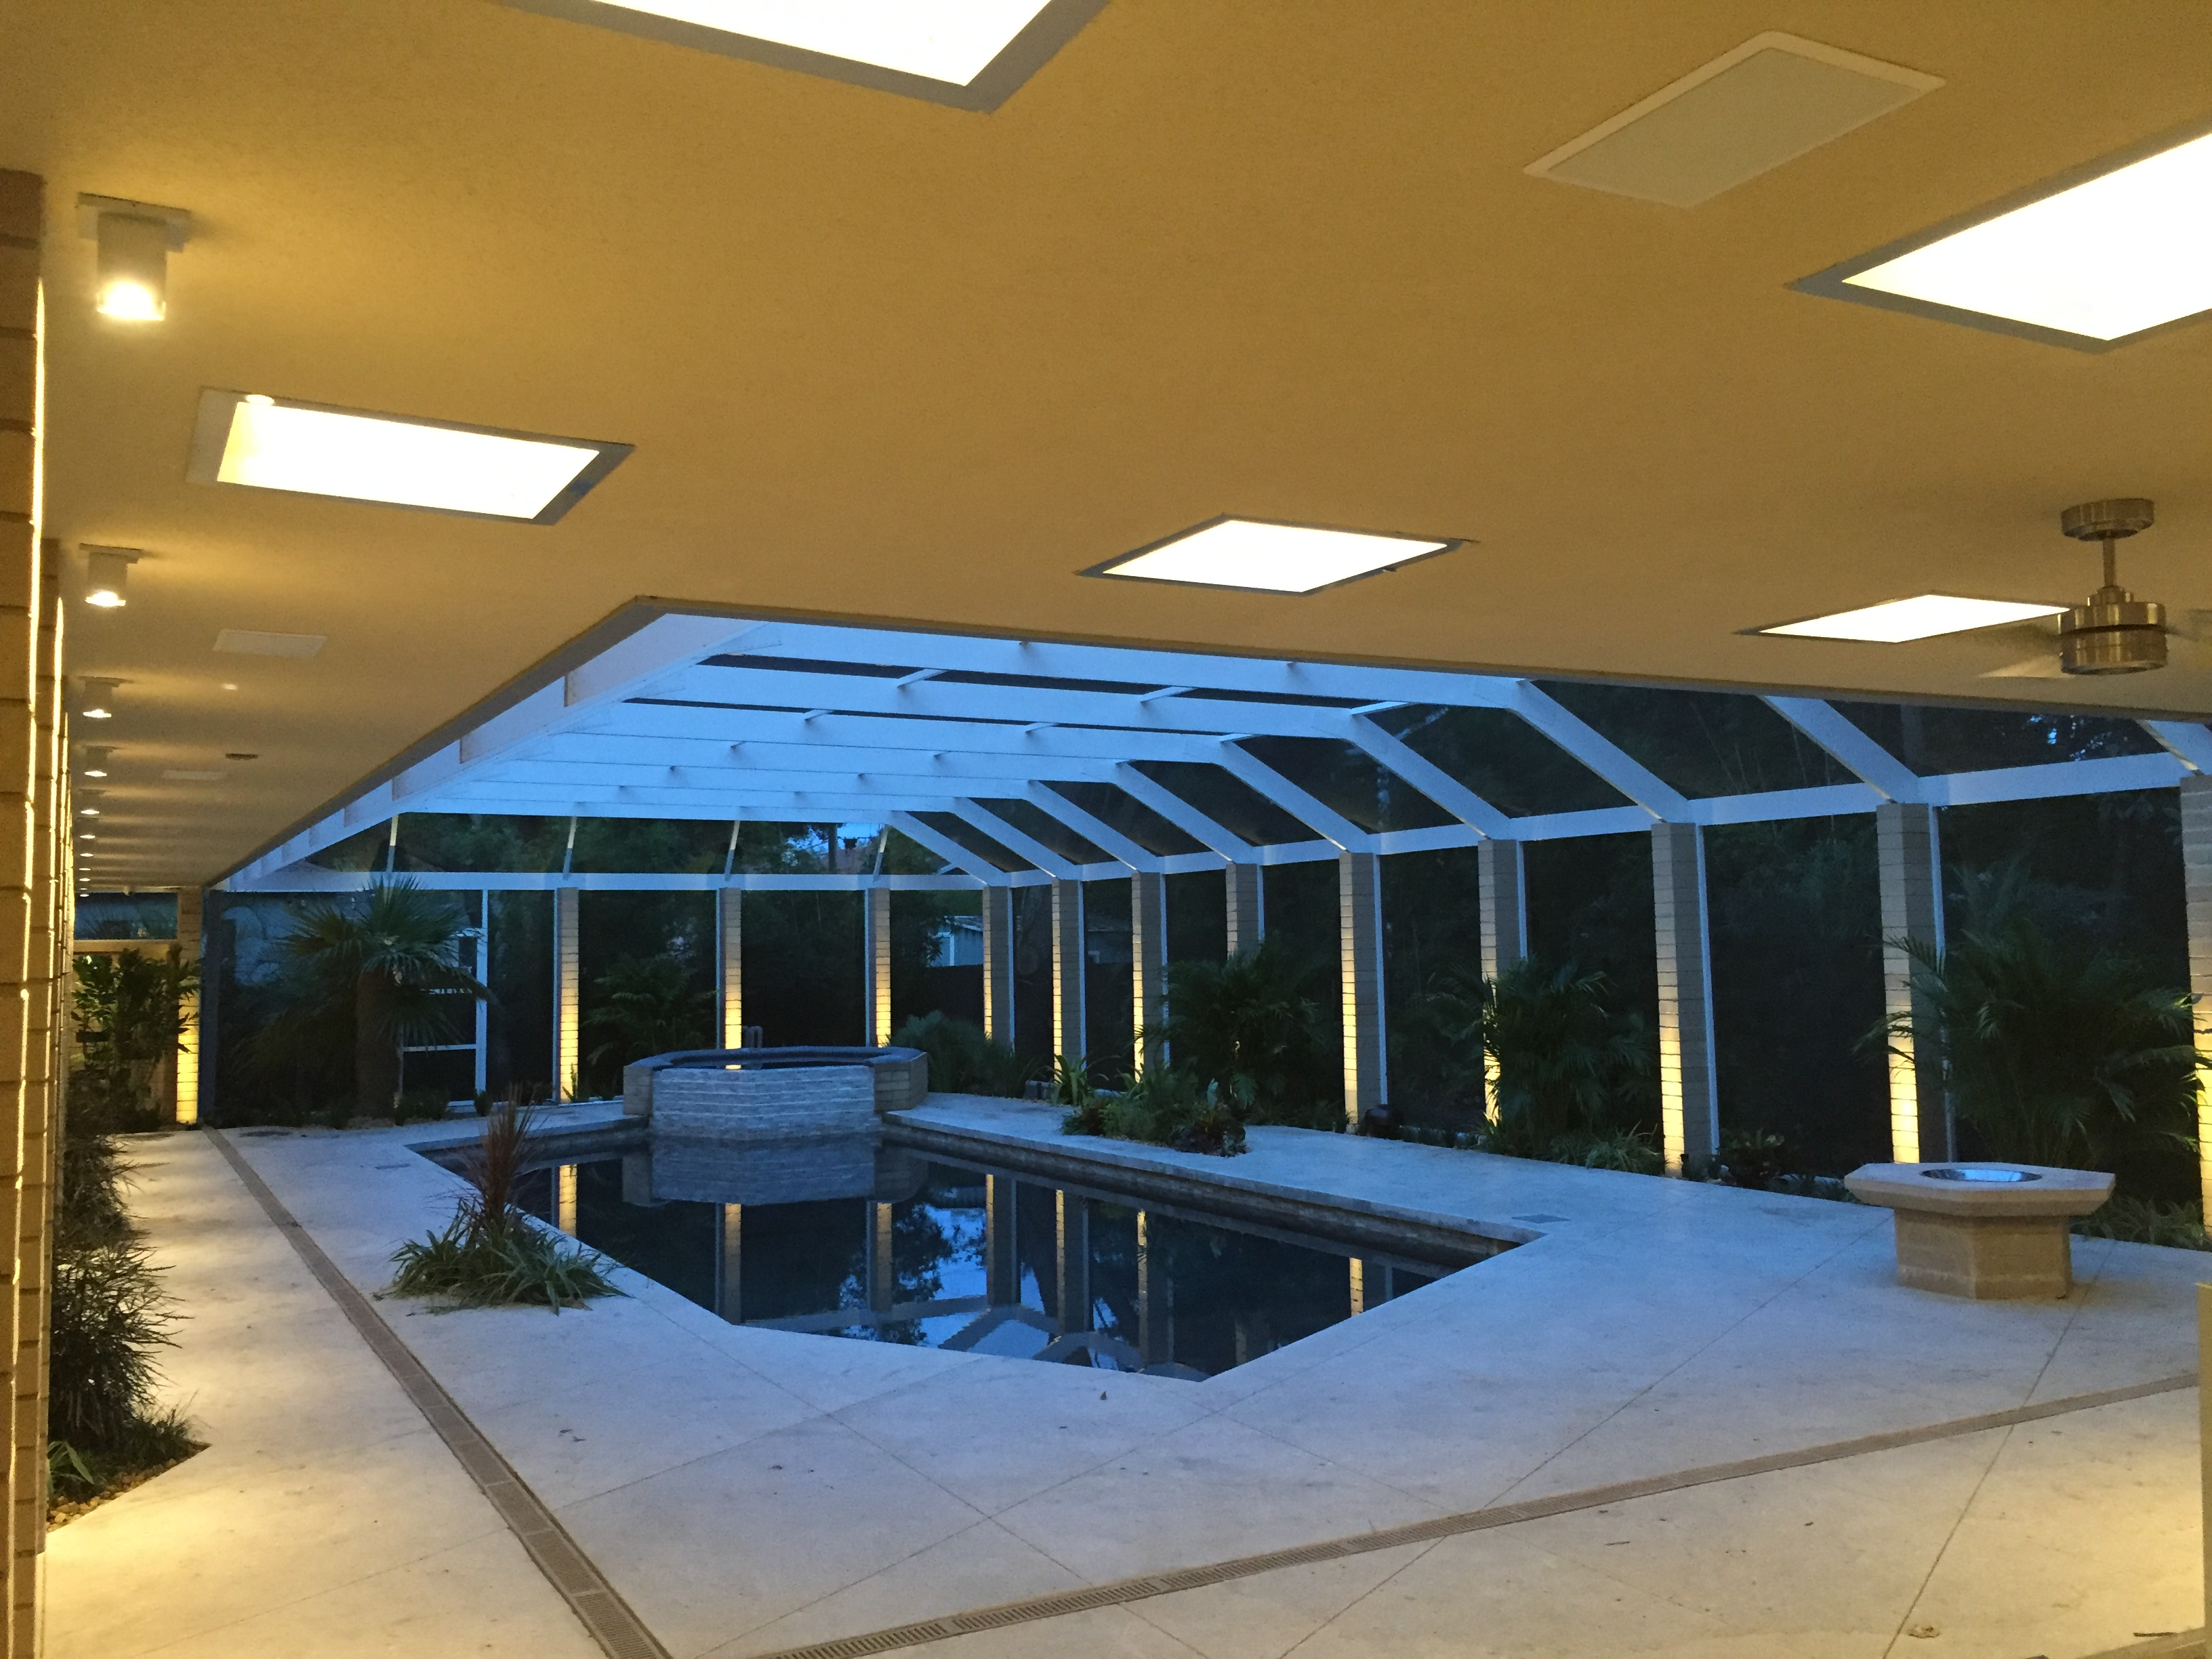 Pool column & exterior lighting